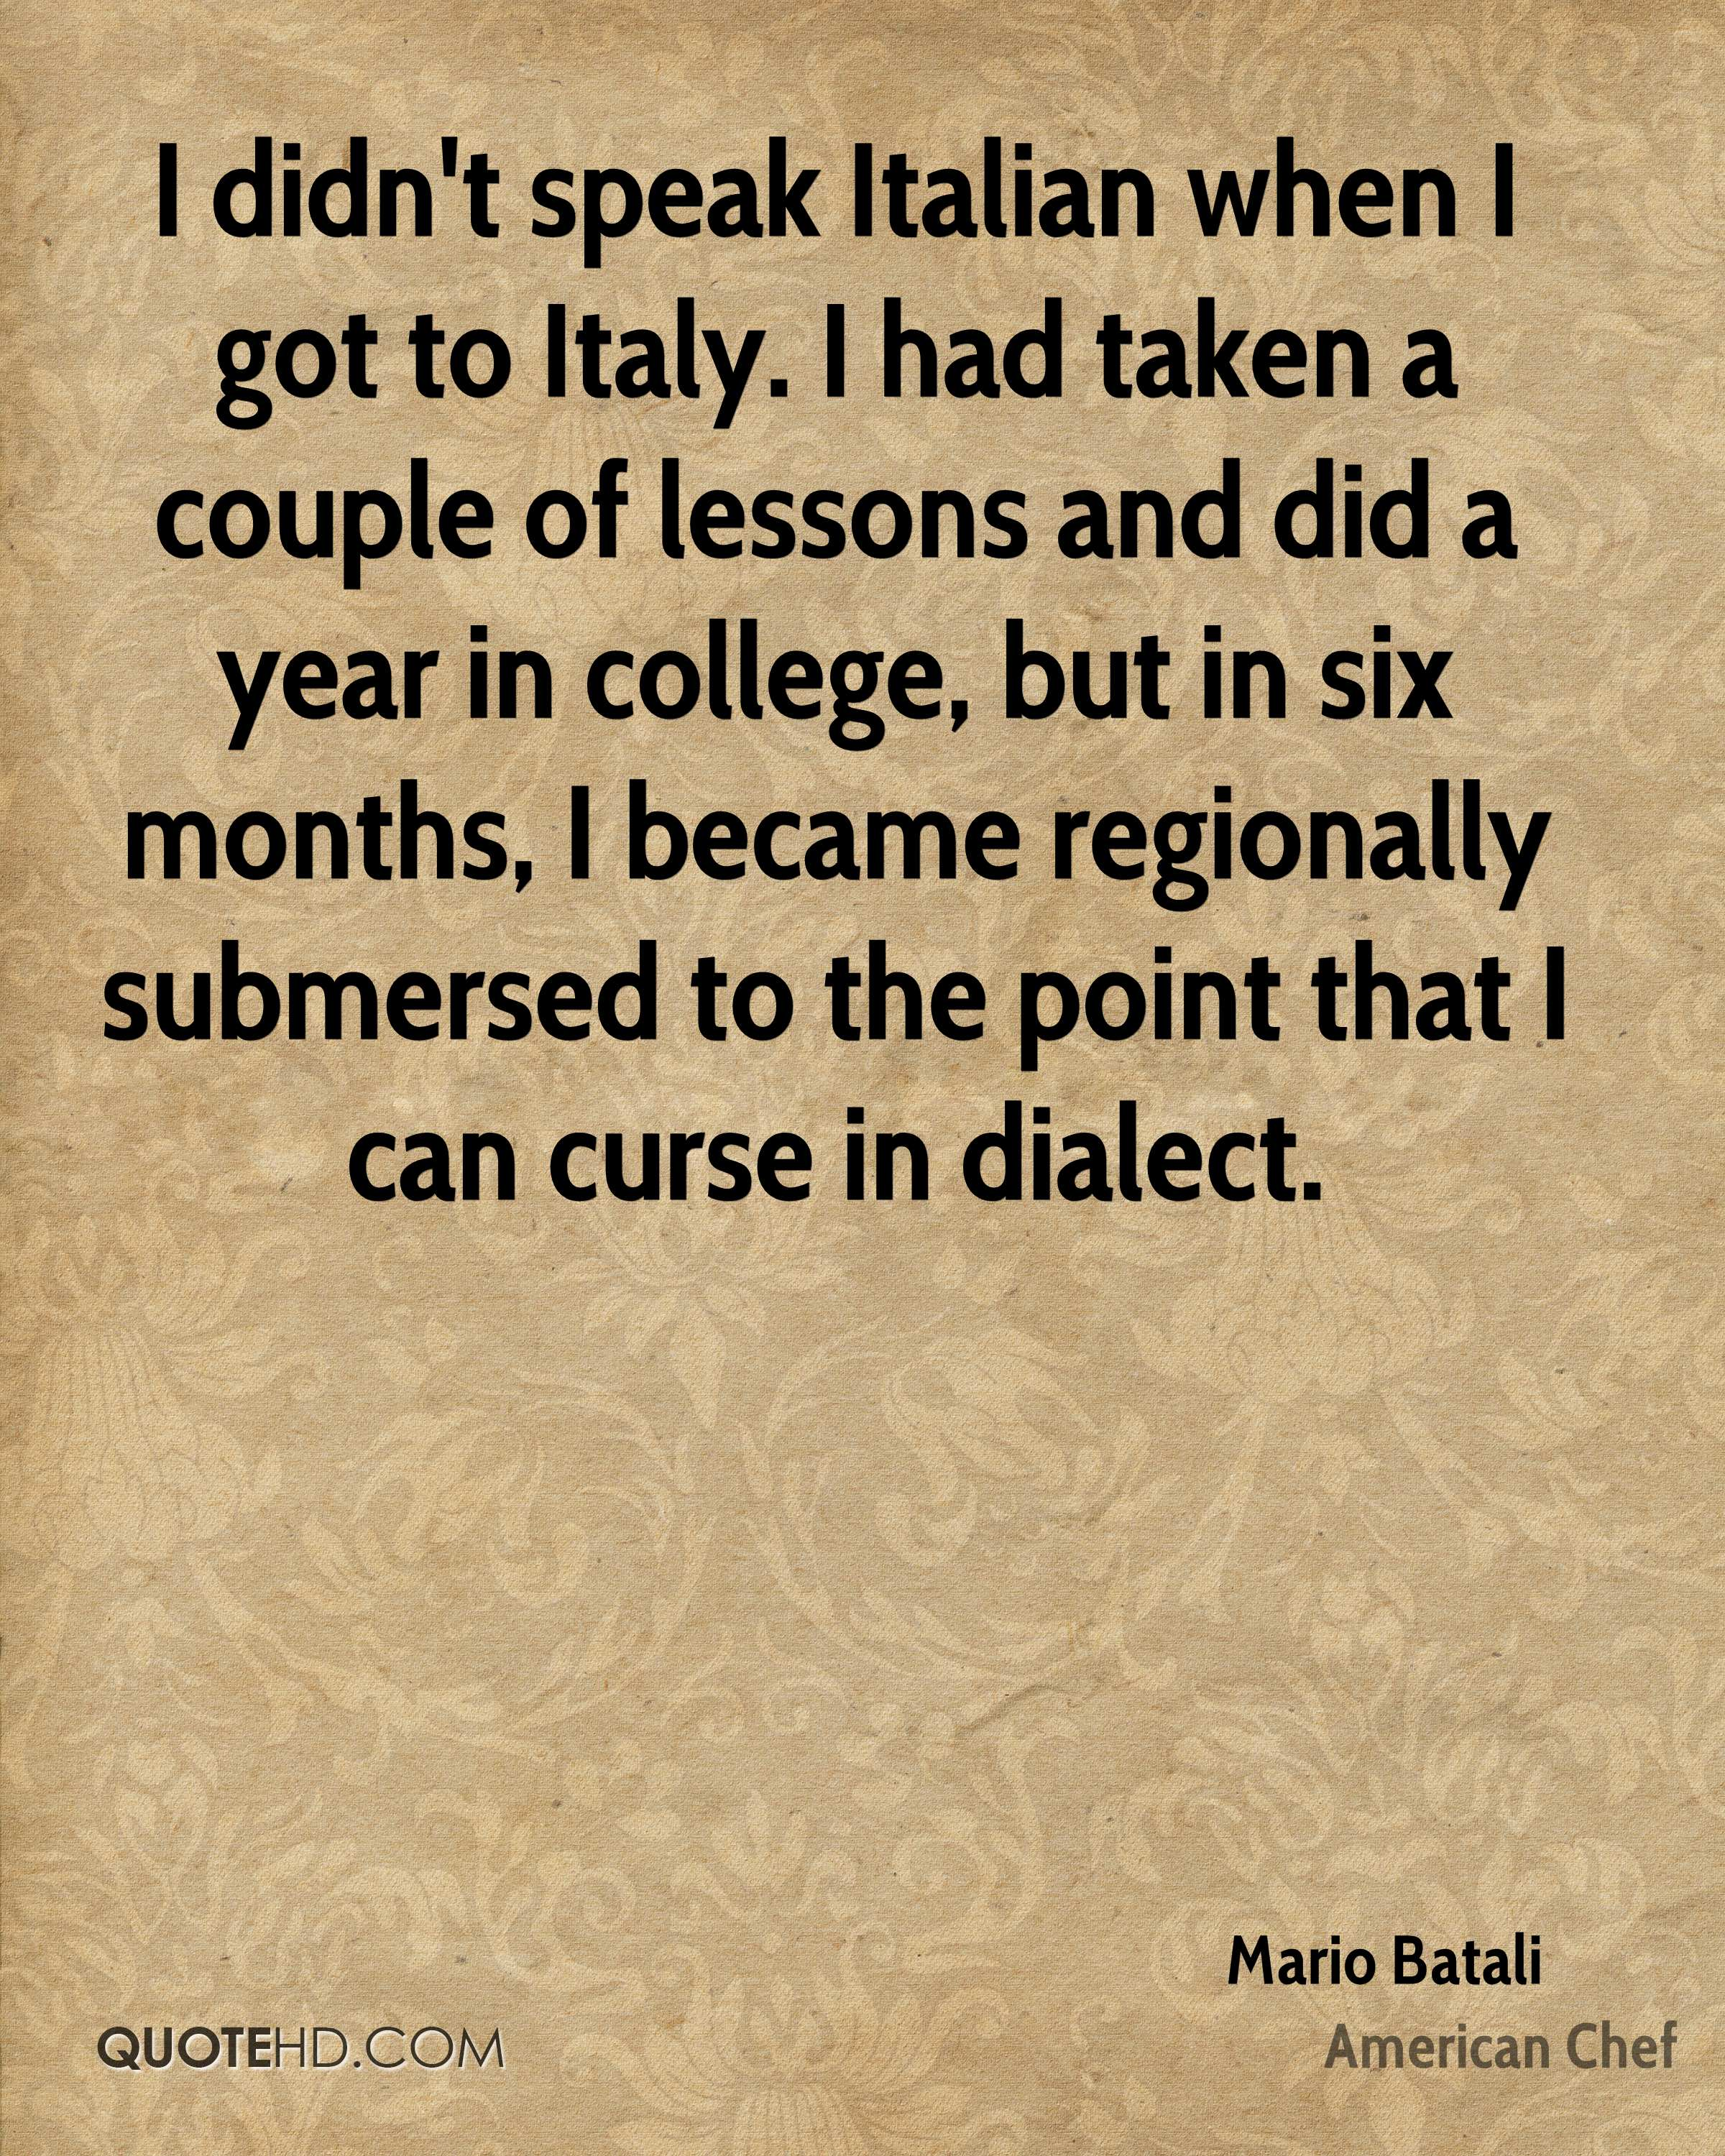 I didn't speak Italian when I got to Italy. I had taken a couple of lessons and did a year in college, but in six months, I became regionally submersed to the point that I can curse in dialect.